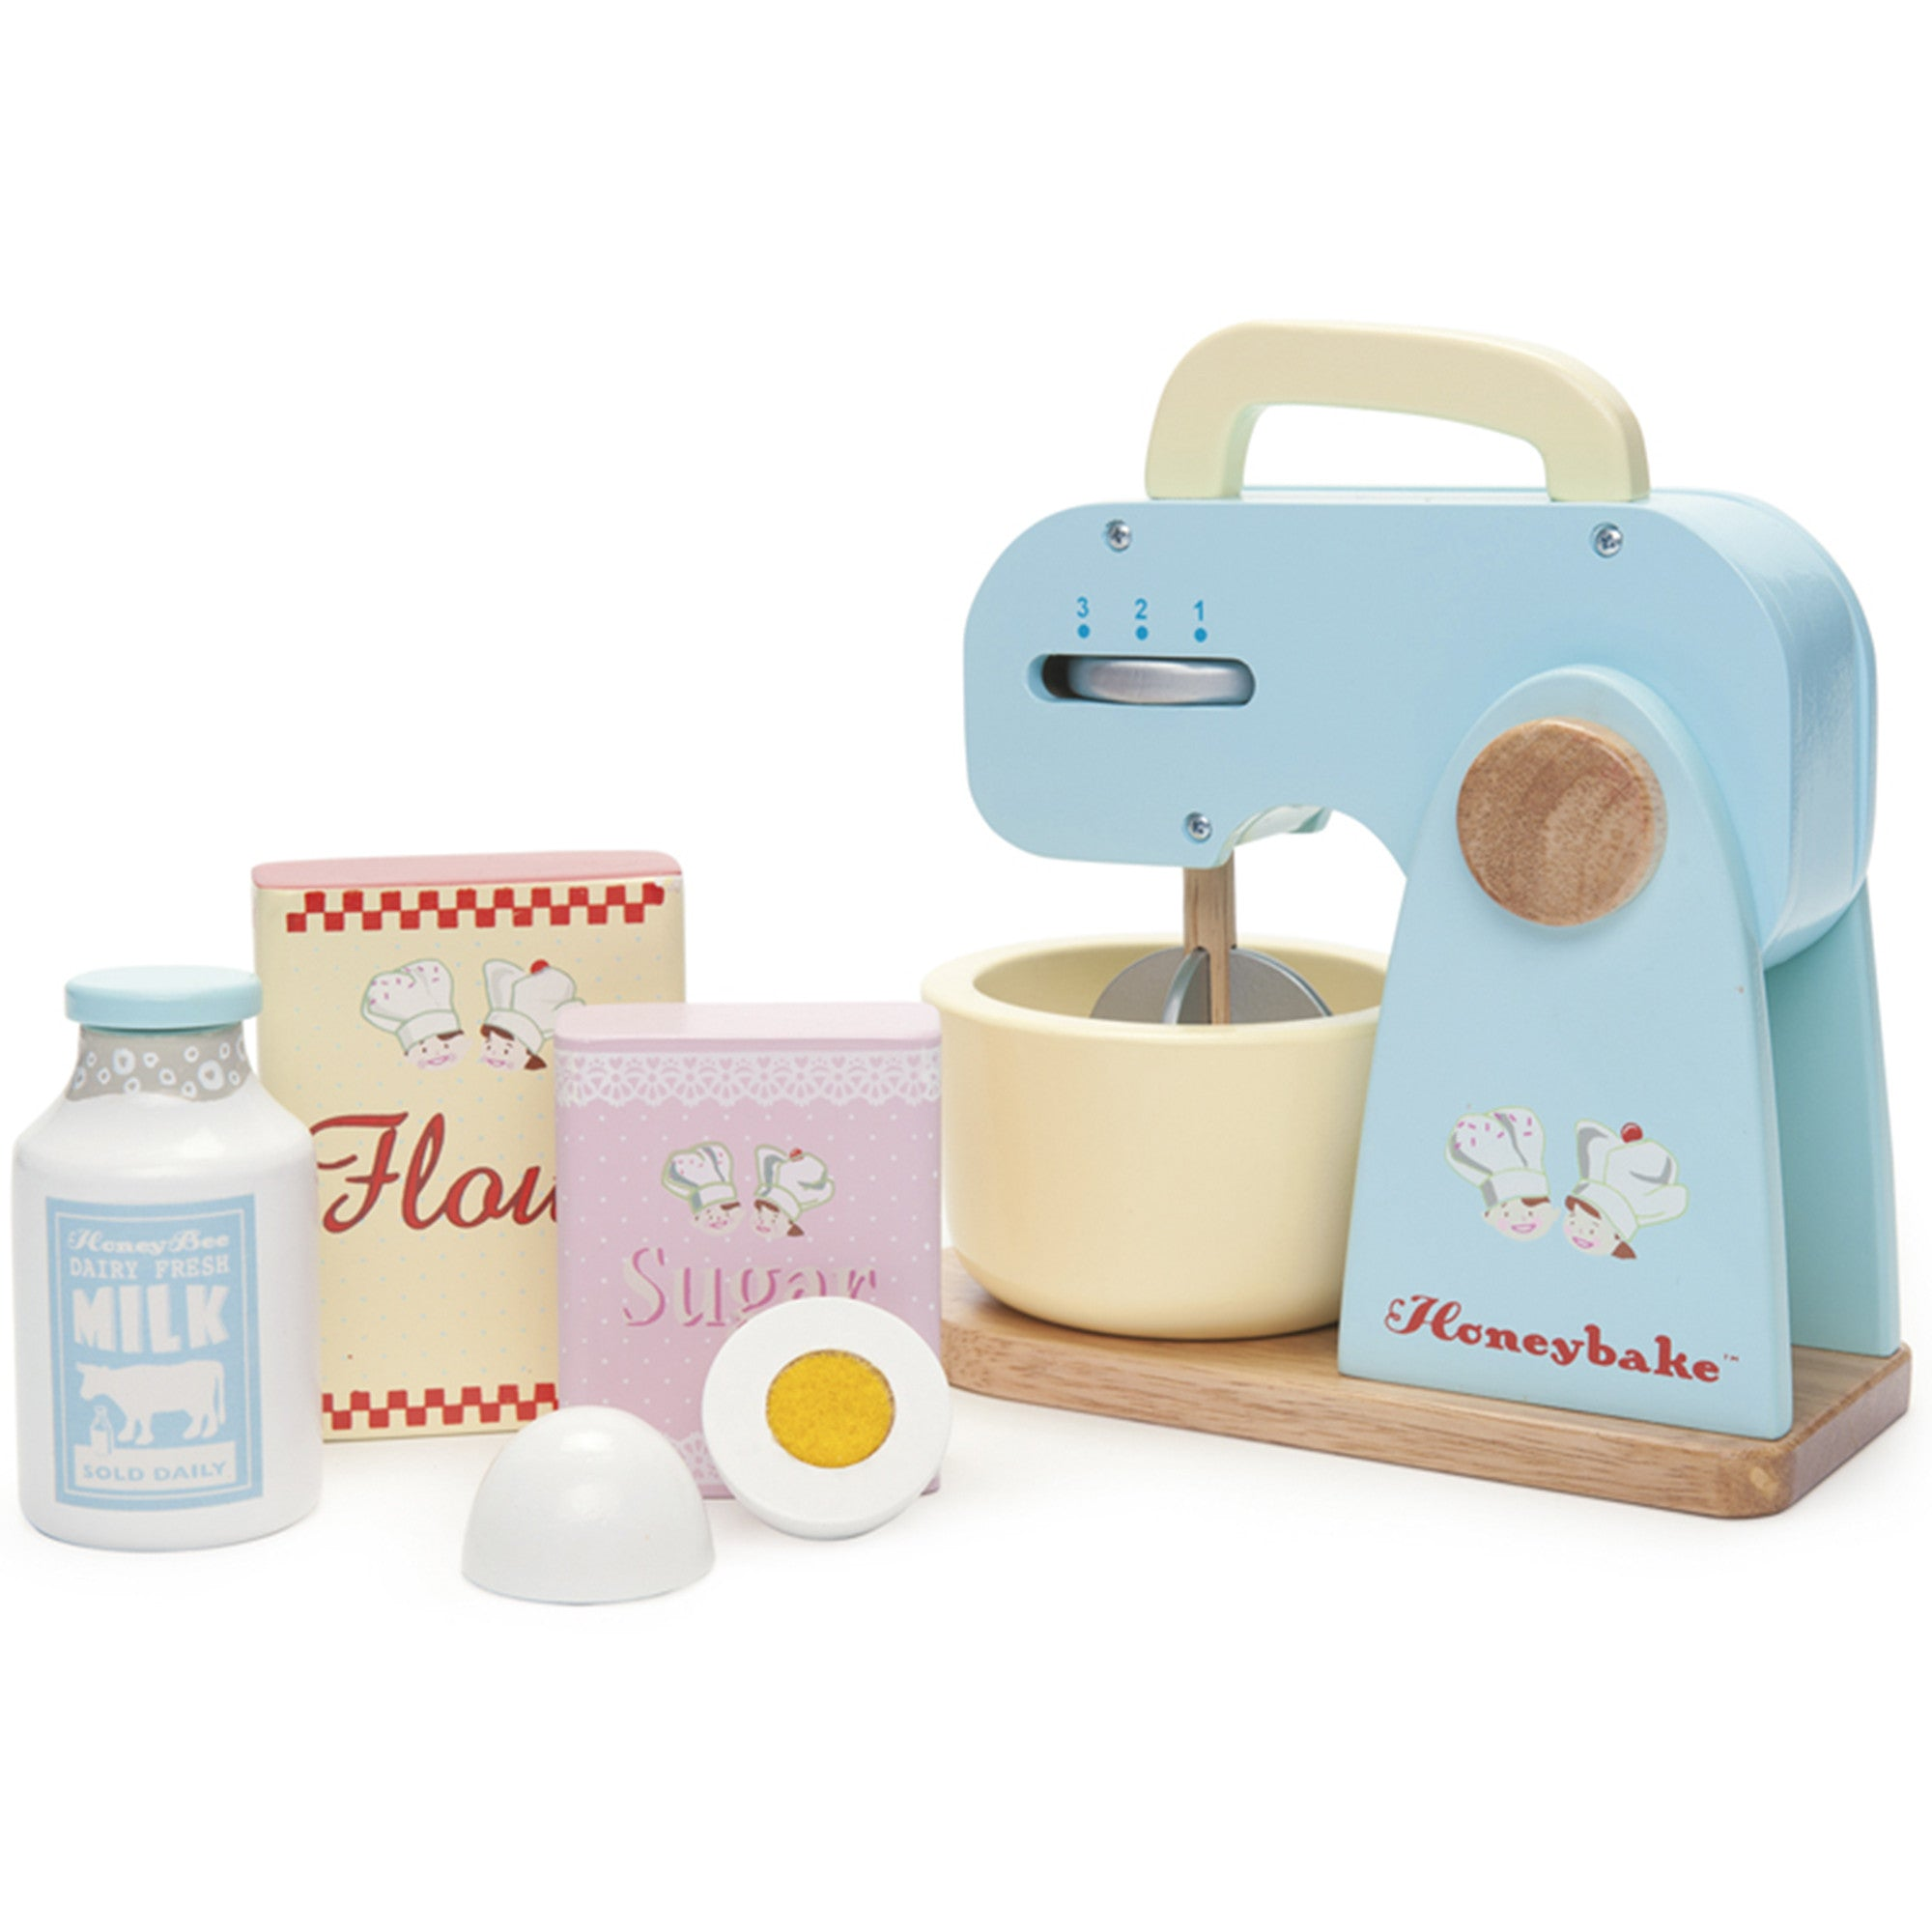 Le Toy Van Honeybake Mixer Le Toy Van Toy Kitchens & Play Food at Little Earth Nest Eco Shop